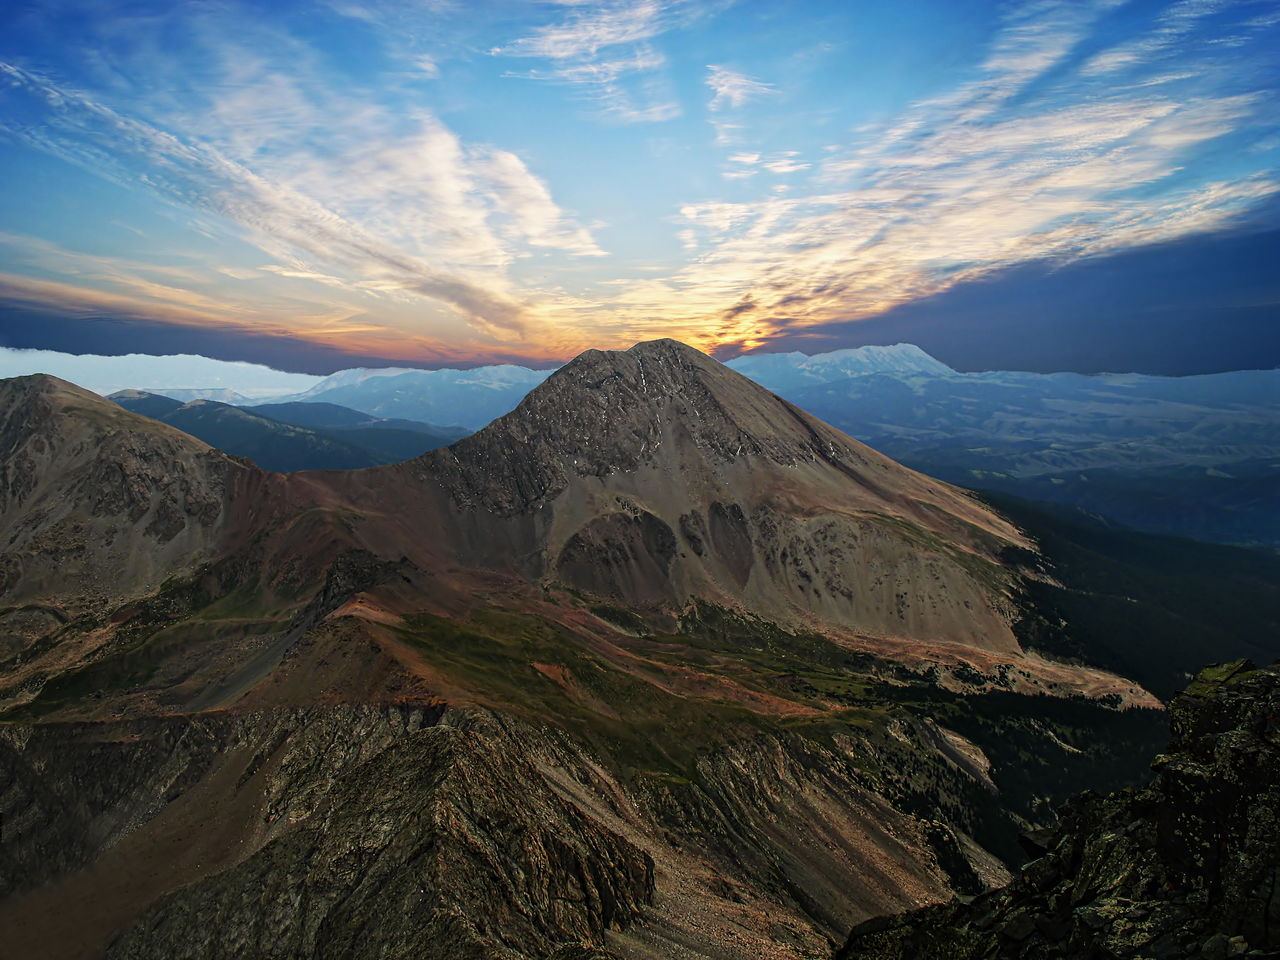 Sunset over Mount Lindsey in the Sangre de Cristo Range of southern Colorado Beauty In Nature Cloud - Sky Colorado Day Landscape Mount Lindsey Mountain Mountain Range Nature No People Outdoors Scenics Sky Sunset Tranquil Scene Tranquility Travel Destinations